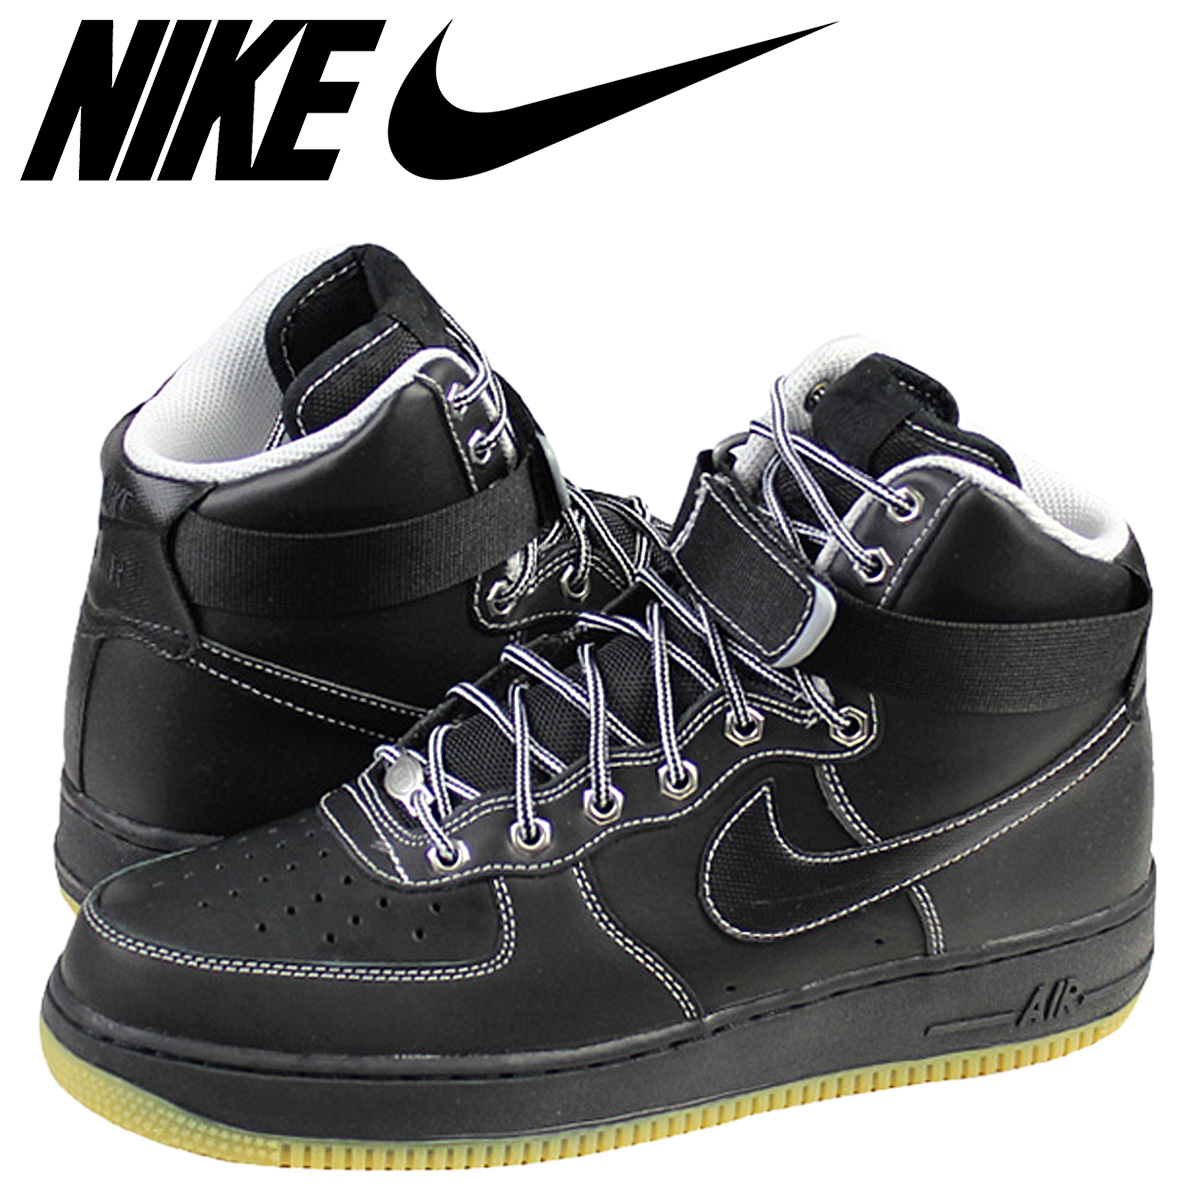 NIKE Nike air force sneakers AIR FORCE 1 HI 07 air force 1 high 315,121-028  men's shoes black black